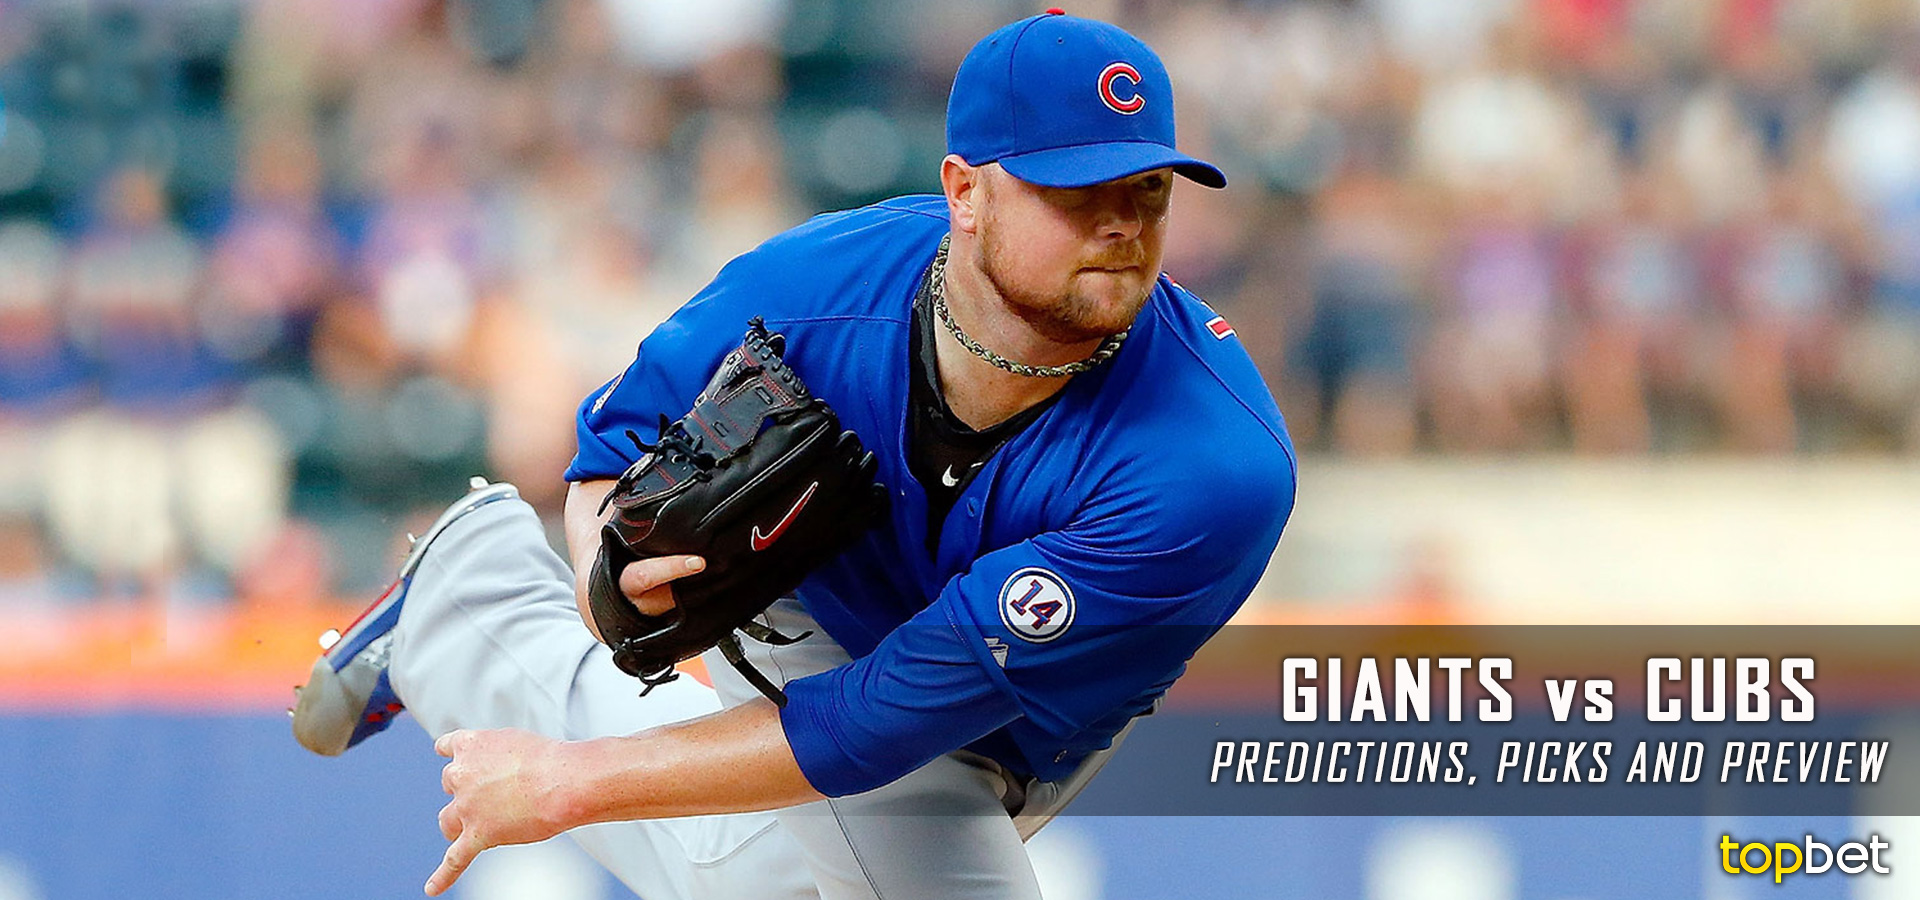 giants vs cubs tickets online betting lines